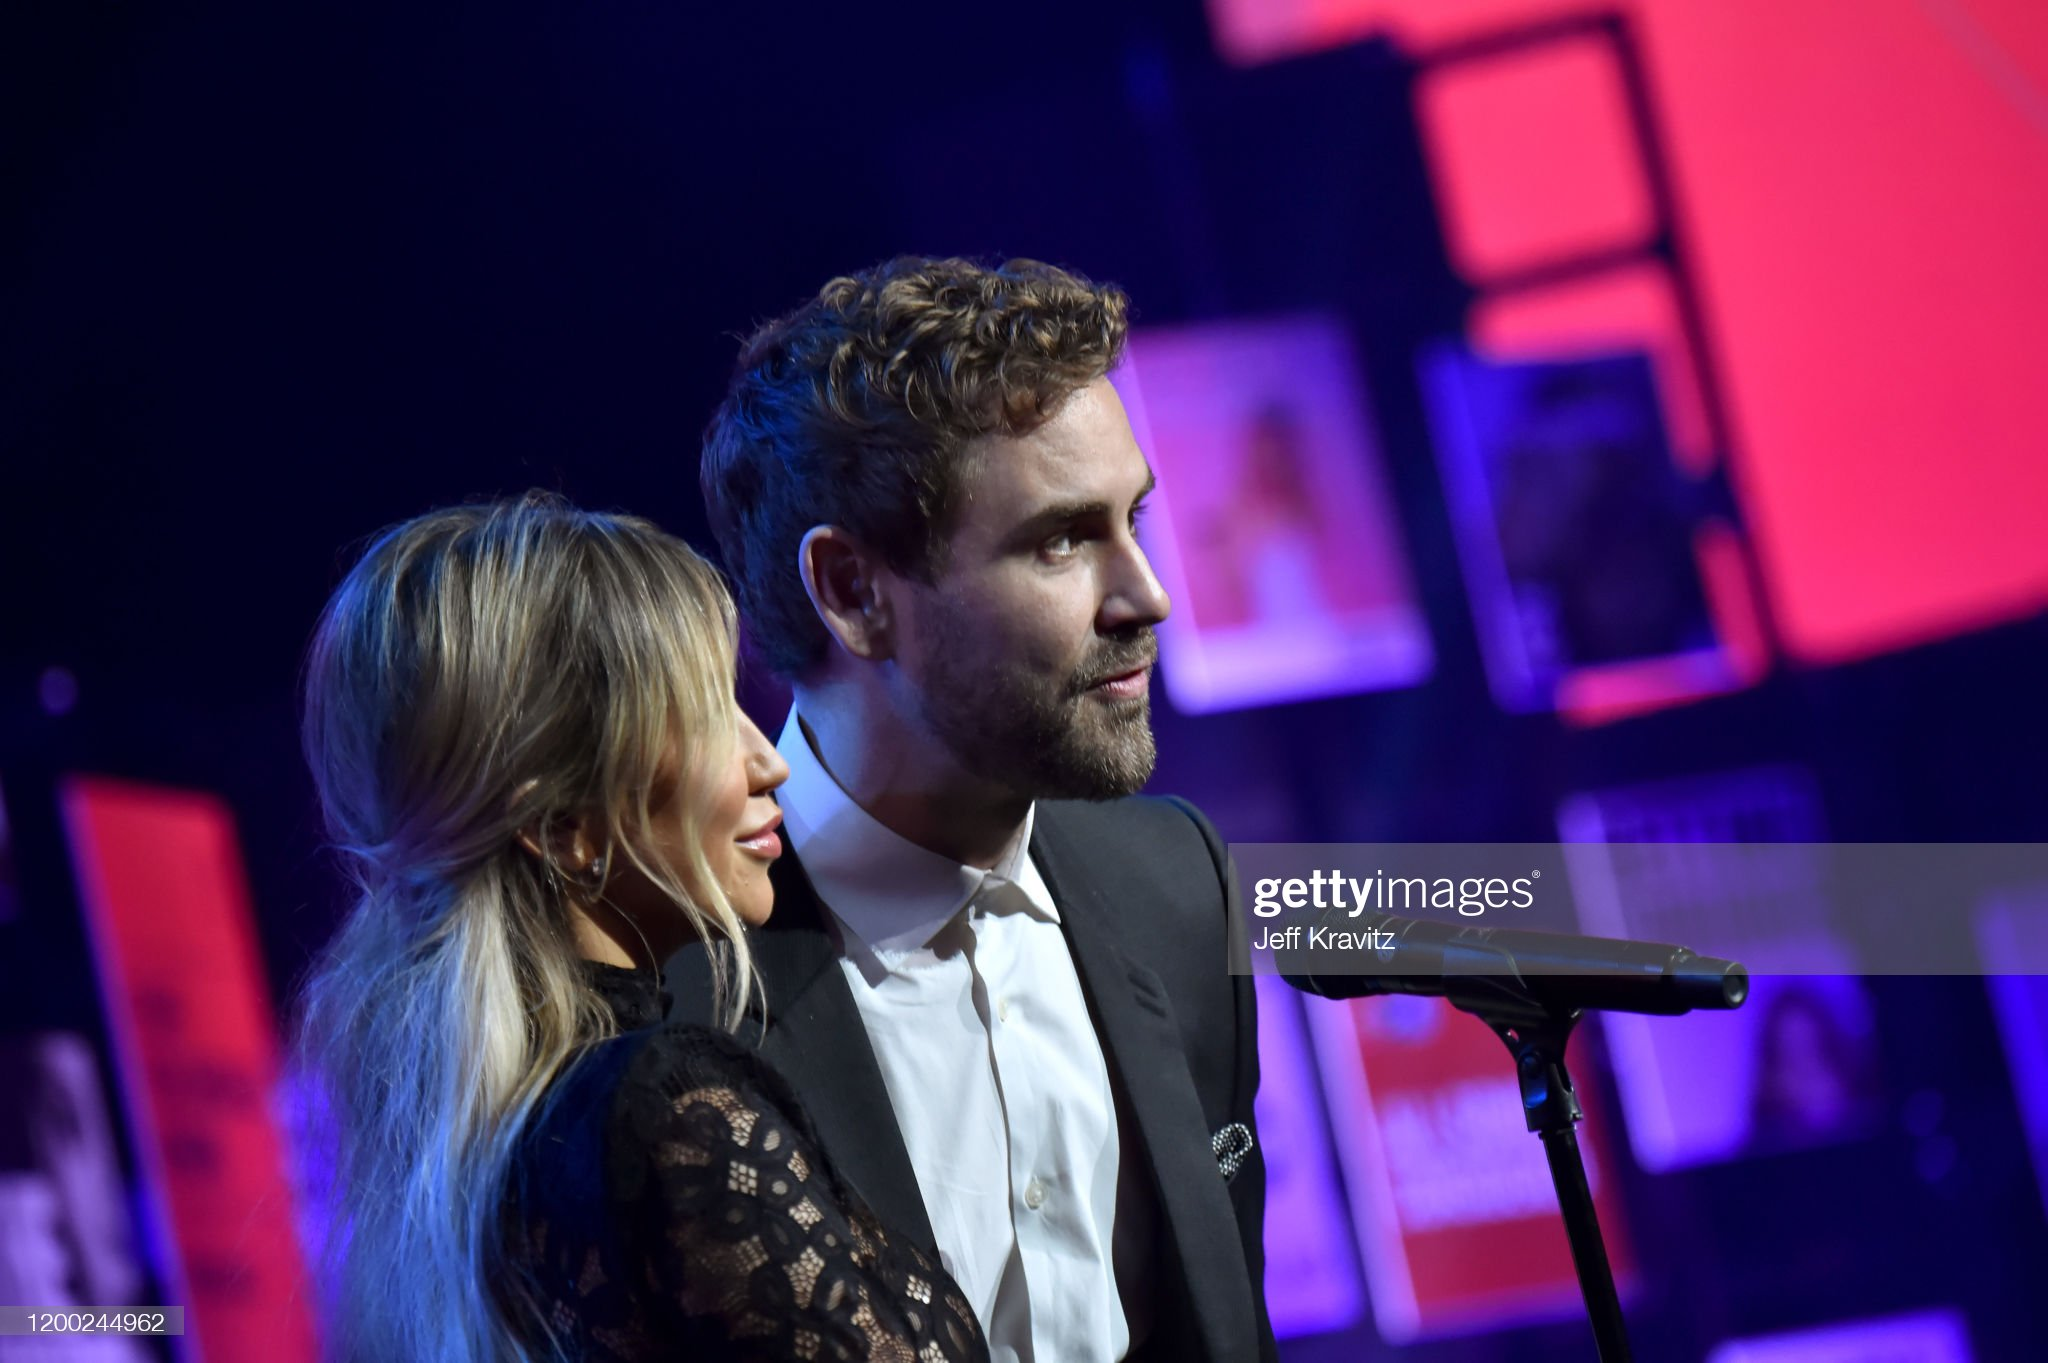 Kaitlyn Bristowe - Jason Tartick - FAN Forum - Discussion  - Page 51 Kaitlyn-bristowe-and-nick-viall-speak-onstage-at-the-2020-iheartradio-picture-id1200244962?s=2048x2048